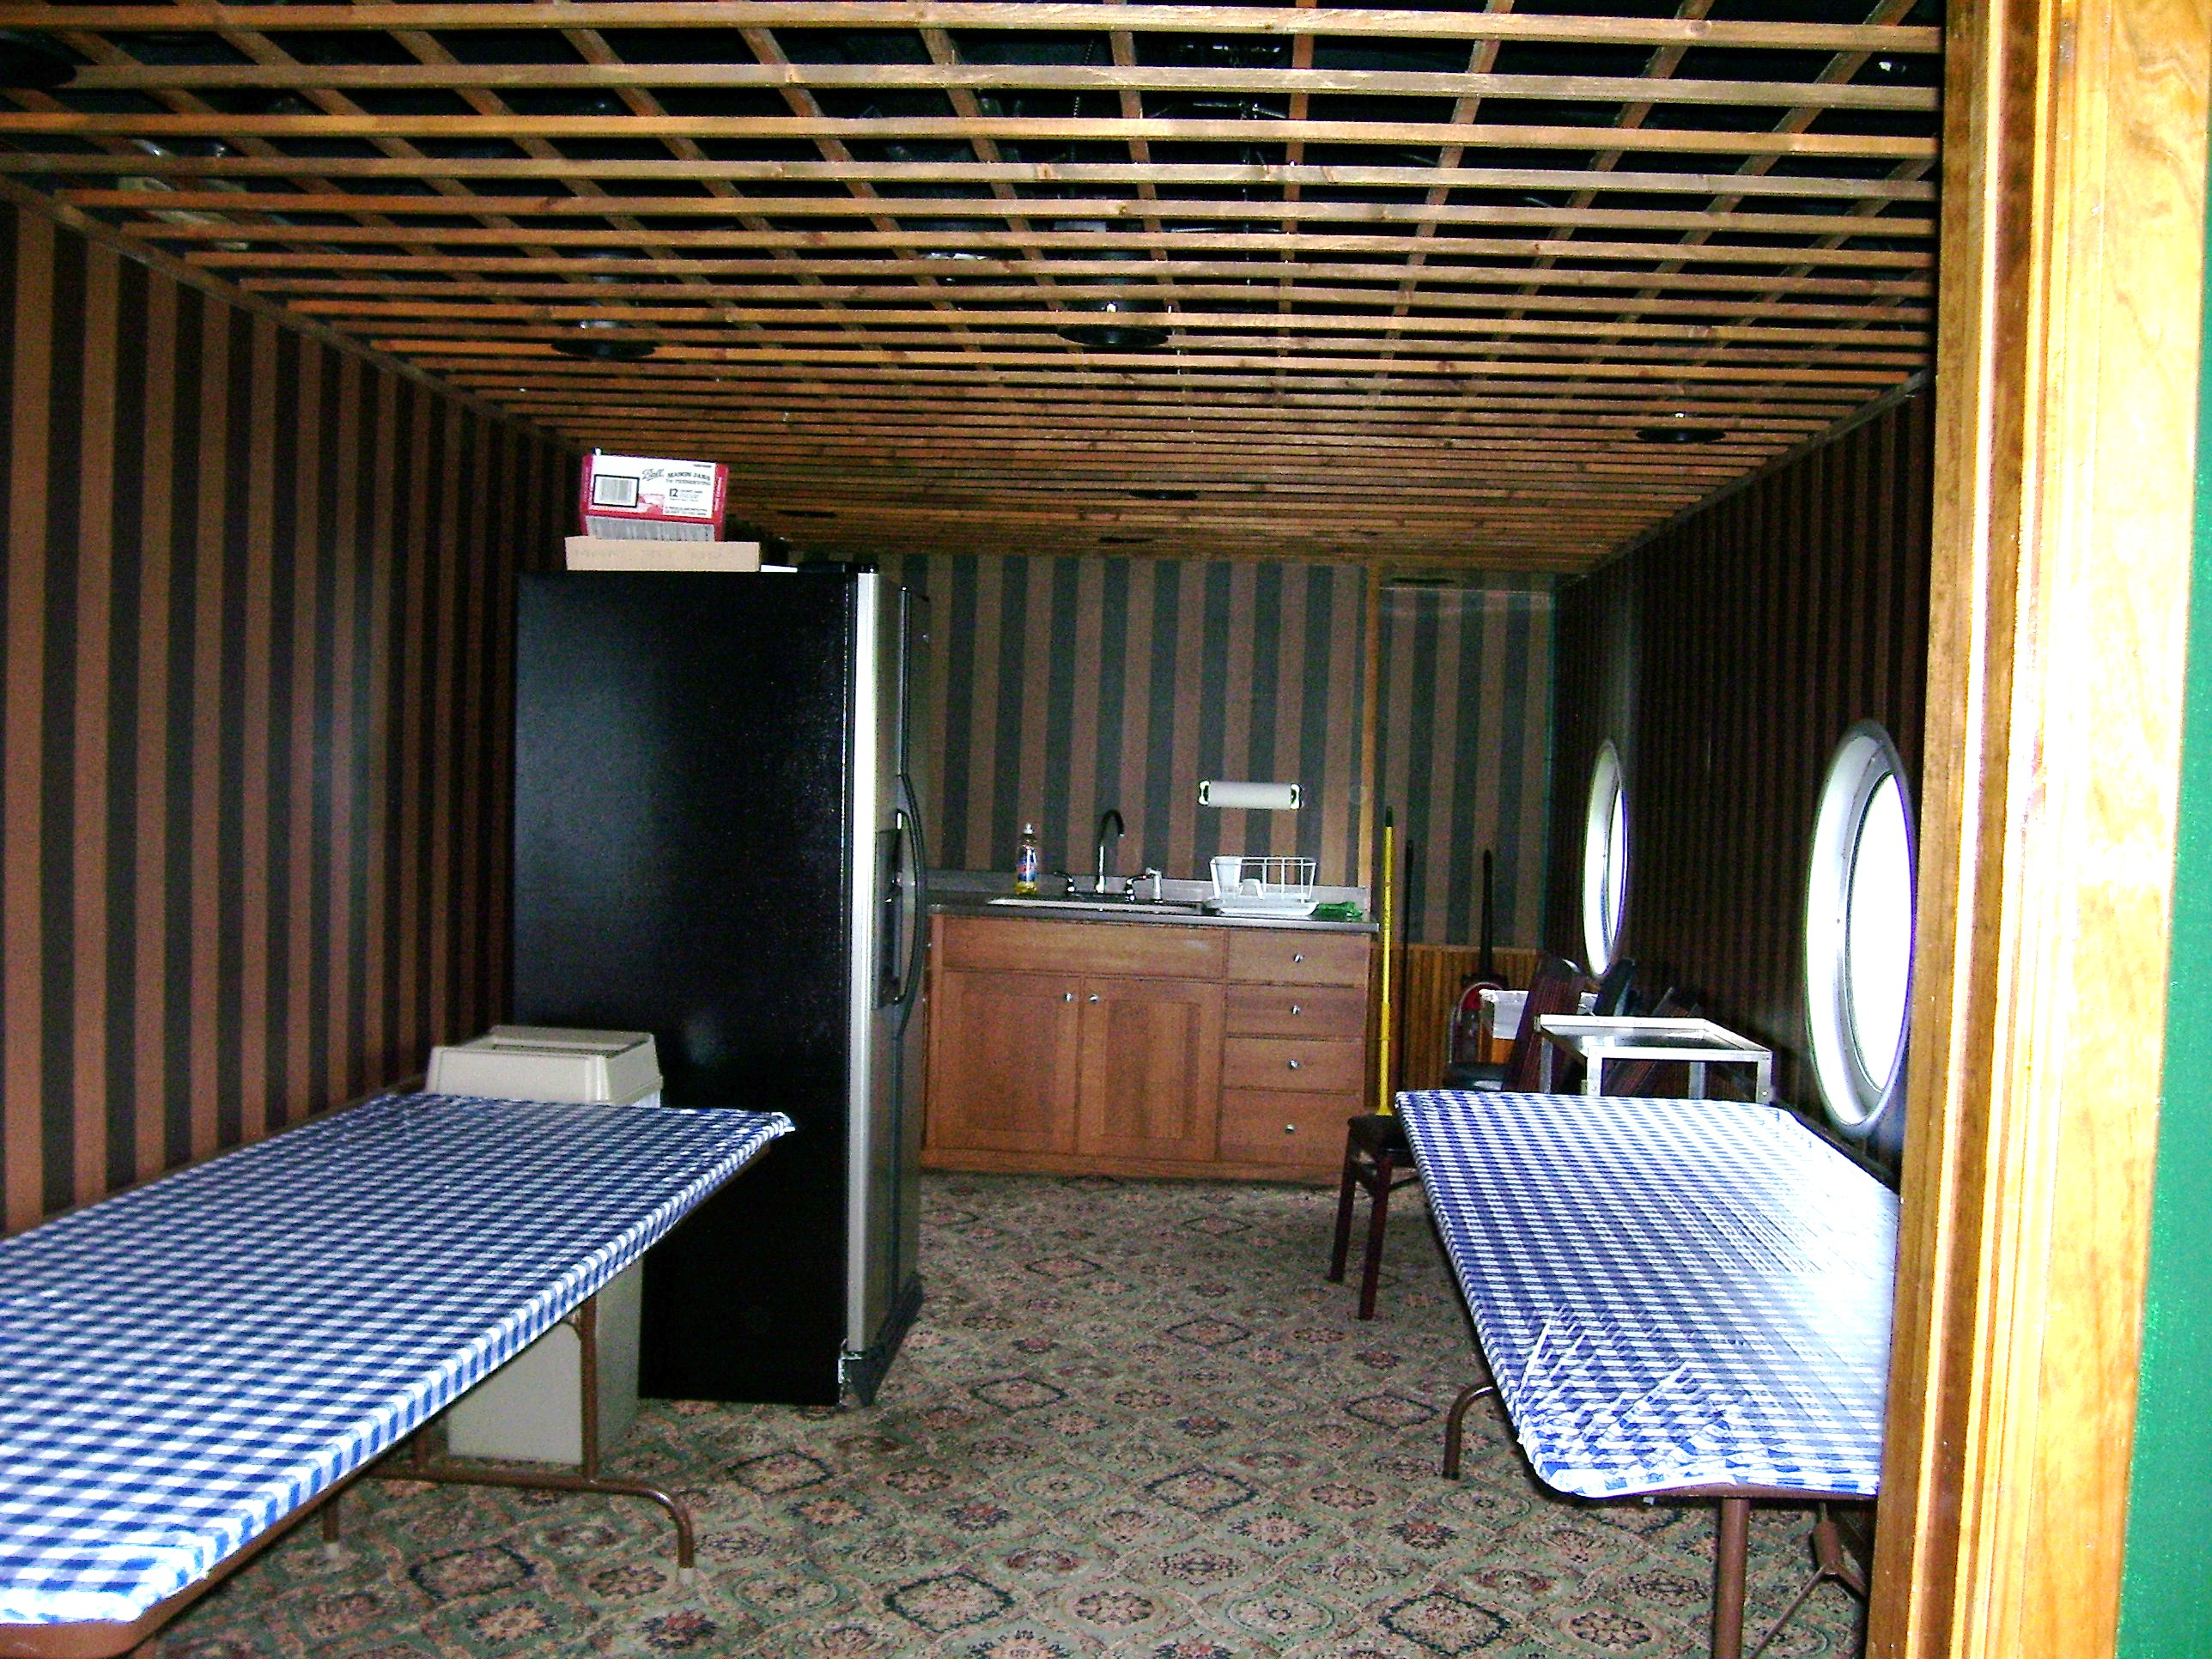 Dining Car Kitchen Area